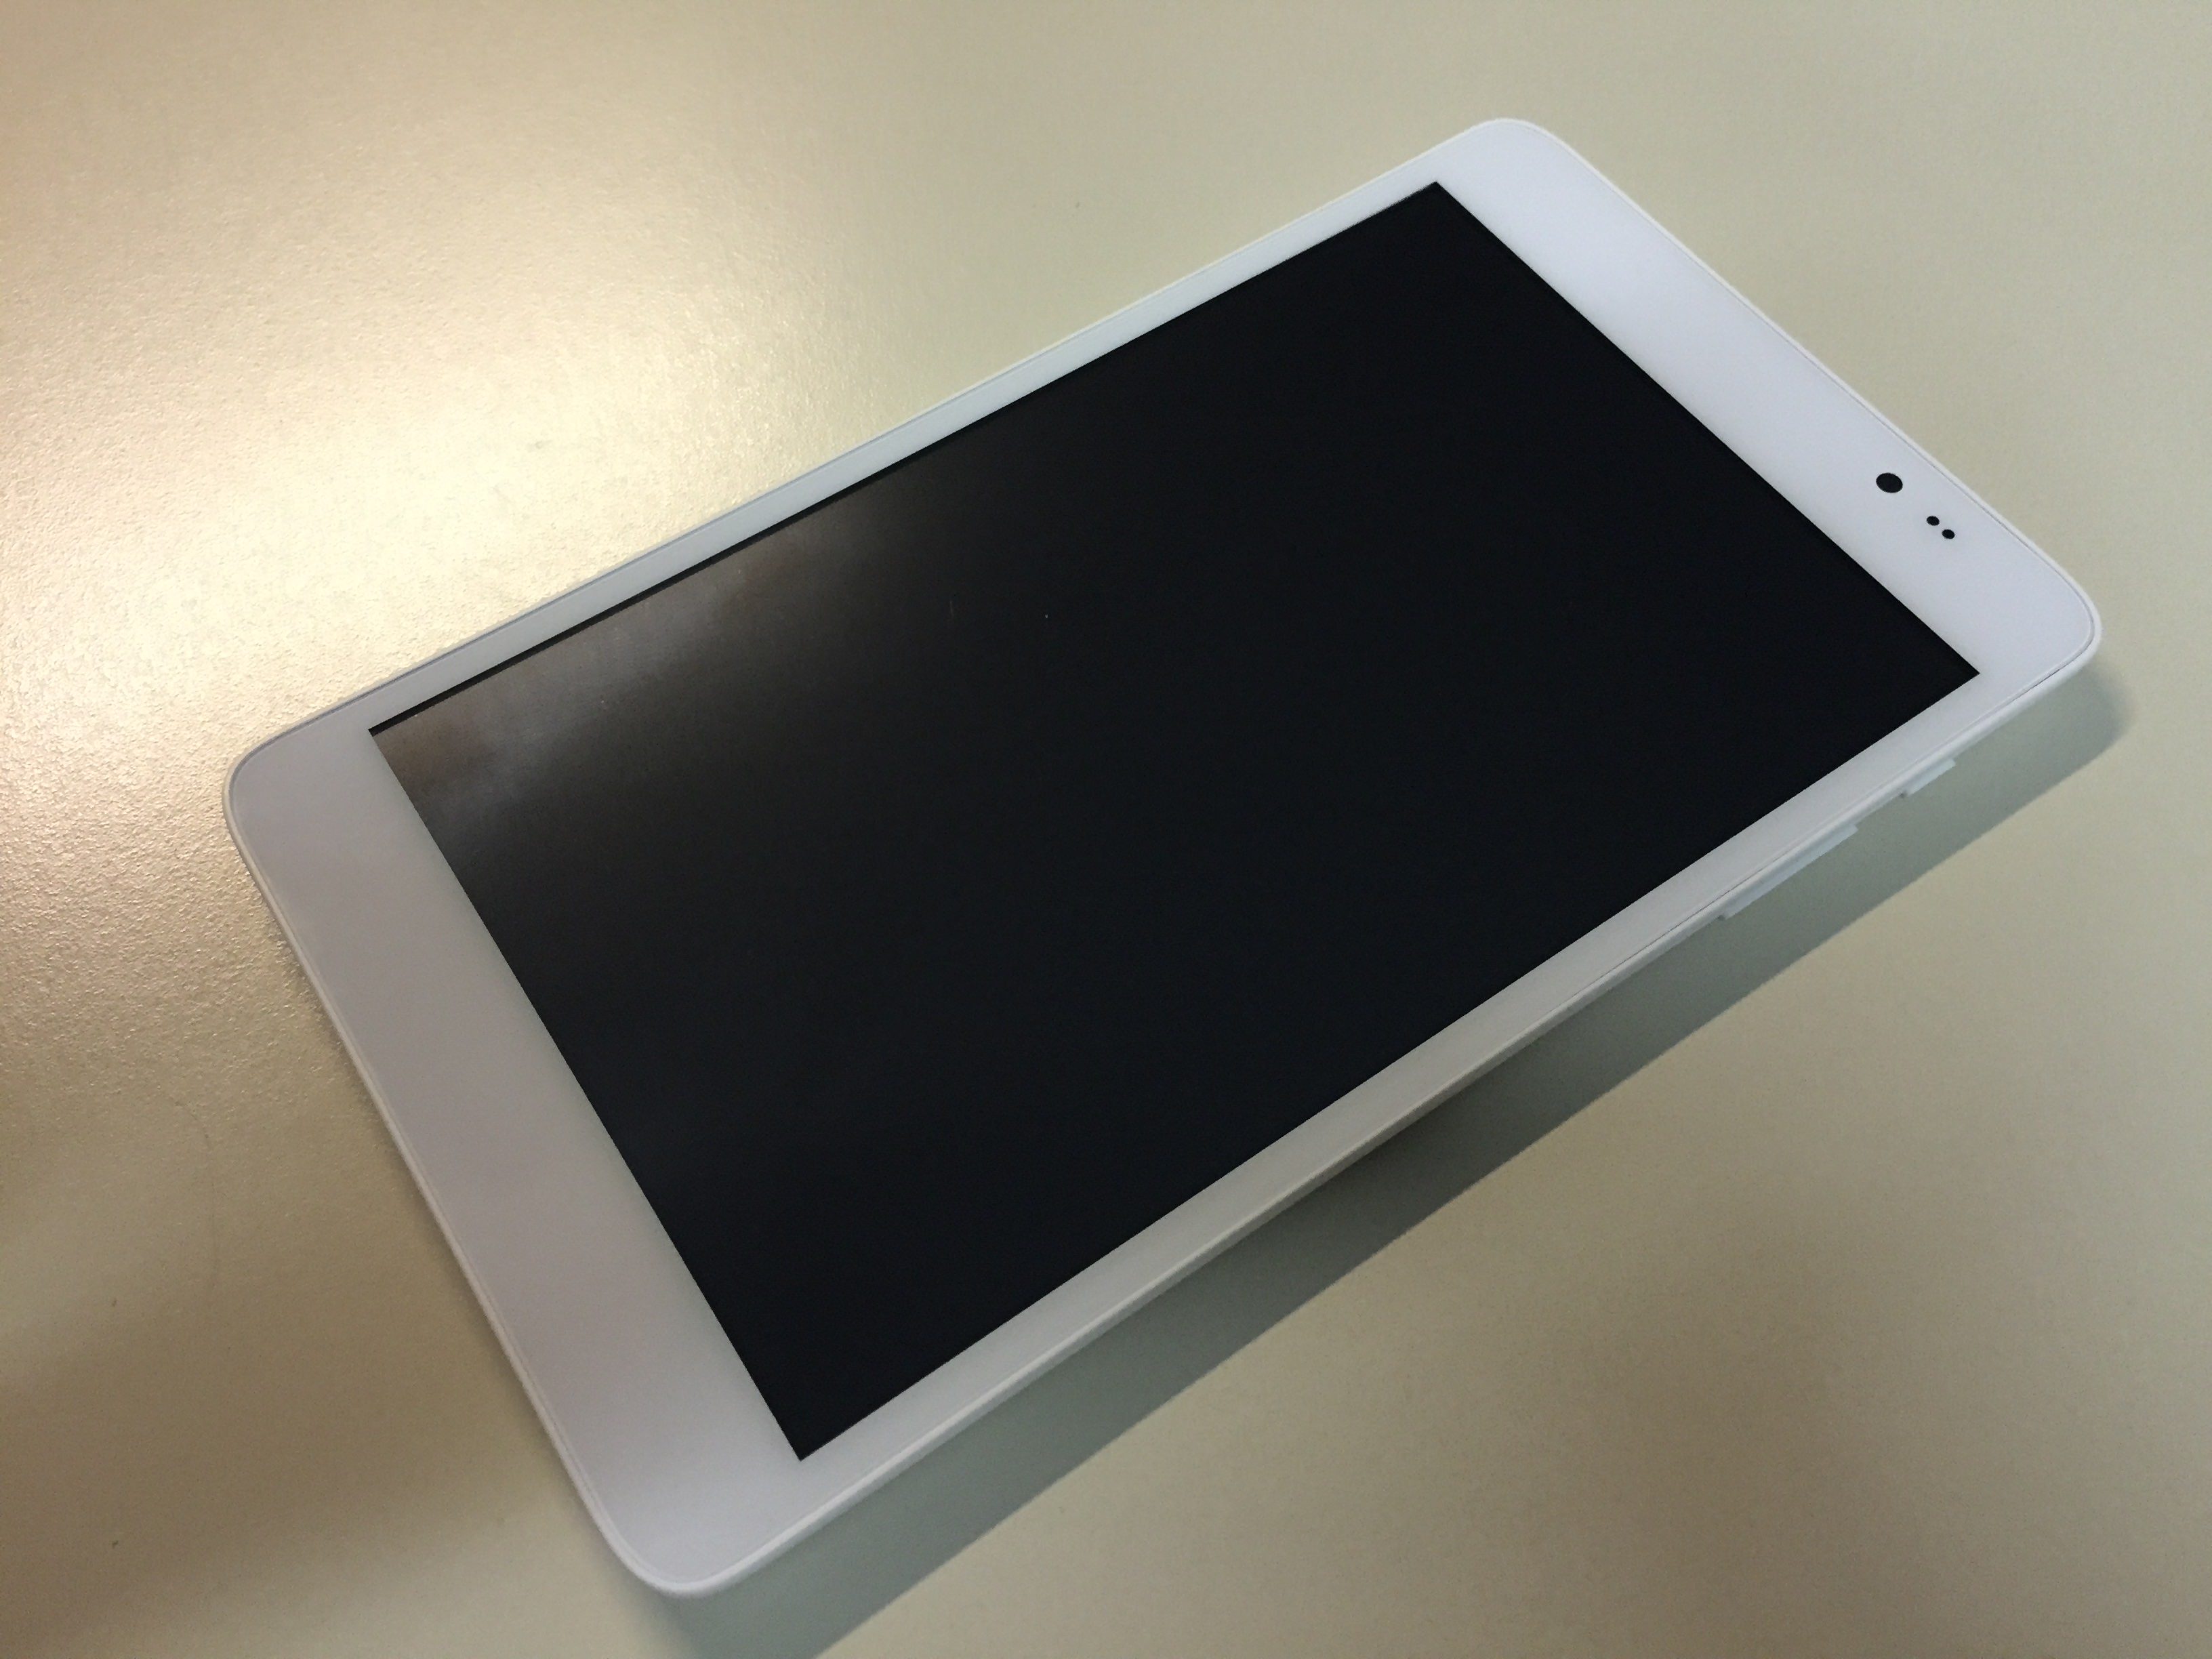 reeder A7i tablet